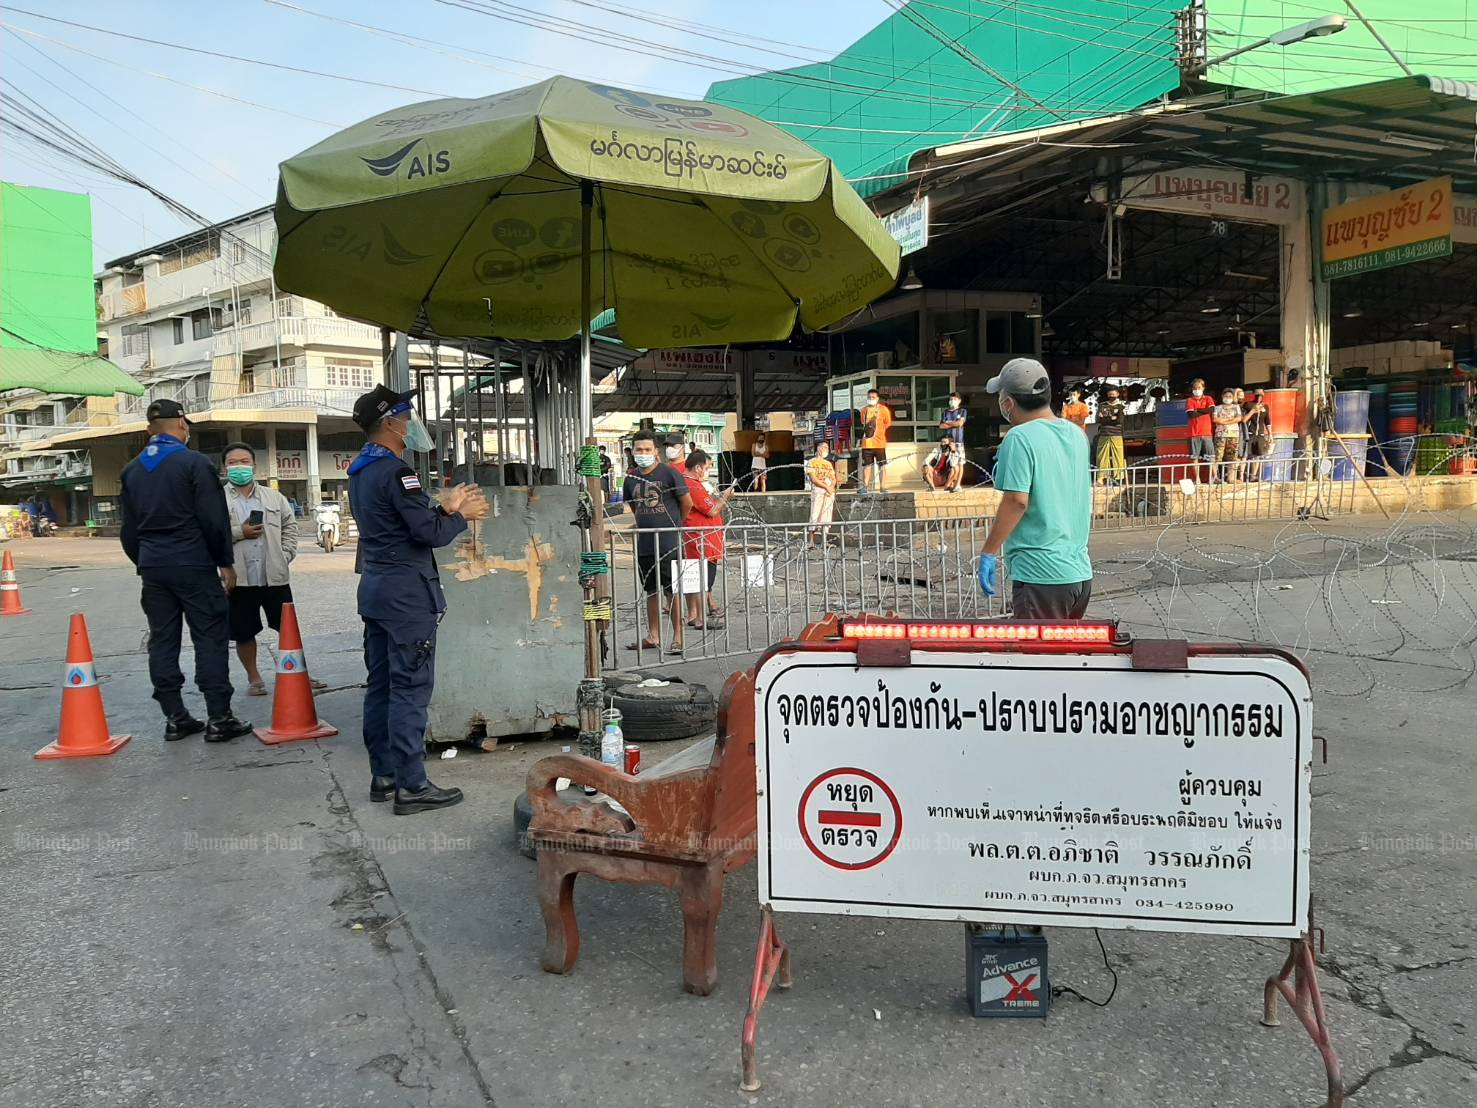 Razor wire lines the Central Shrimp Market in Muang district of Samut Sakhon as it is one of the areas locked down by authorities. (Photo by Arnun Chonmahatrakool)